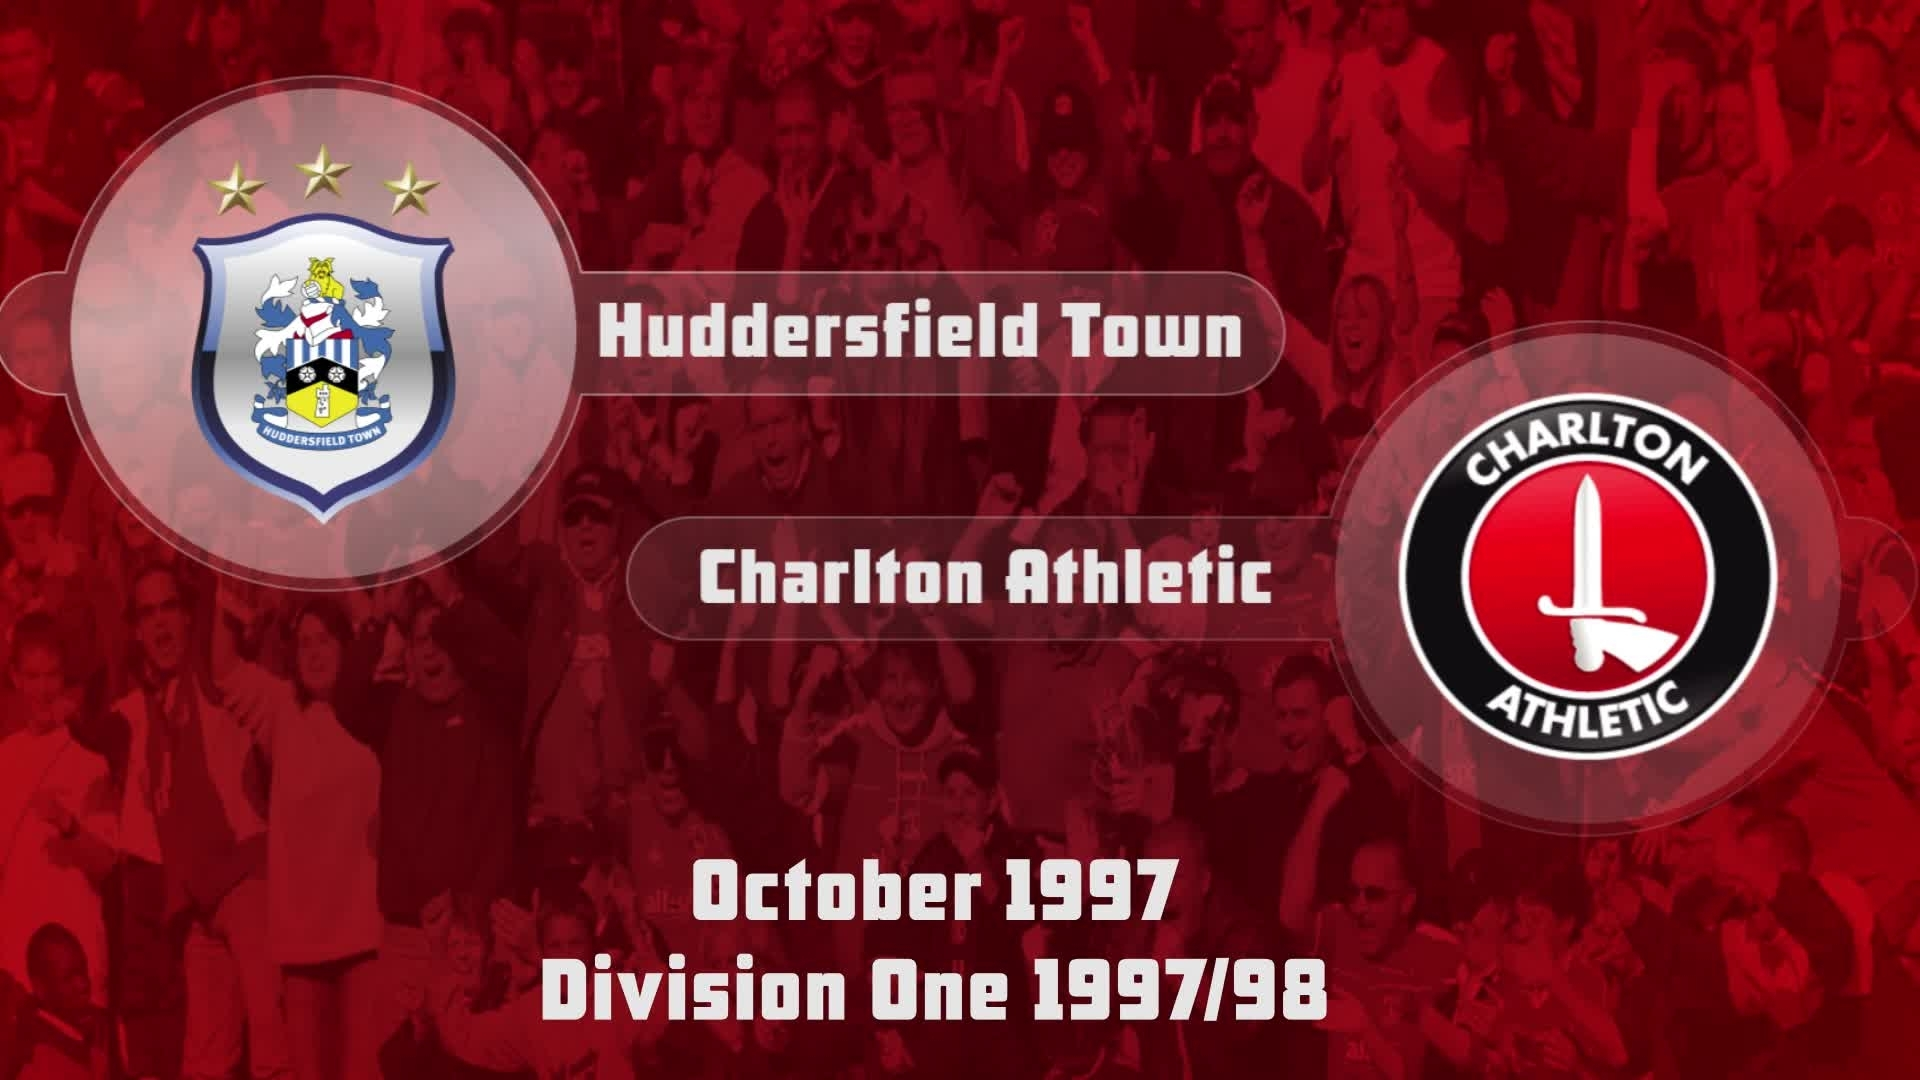 12 HIGHLIGHTS | Huddersfield 0 Charlton 3 (Oct 1997)